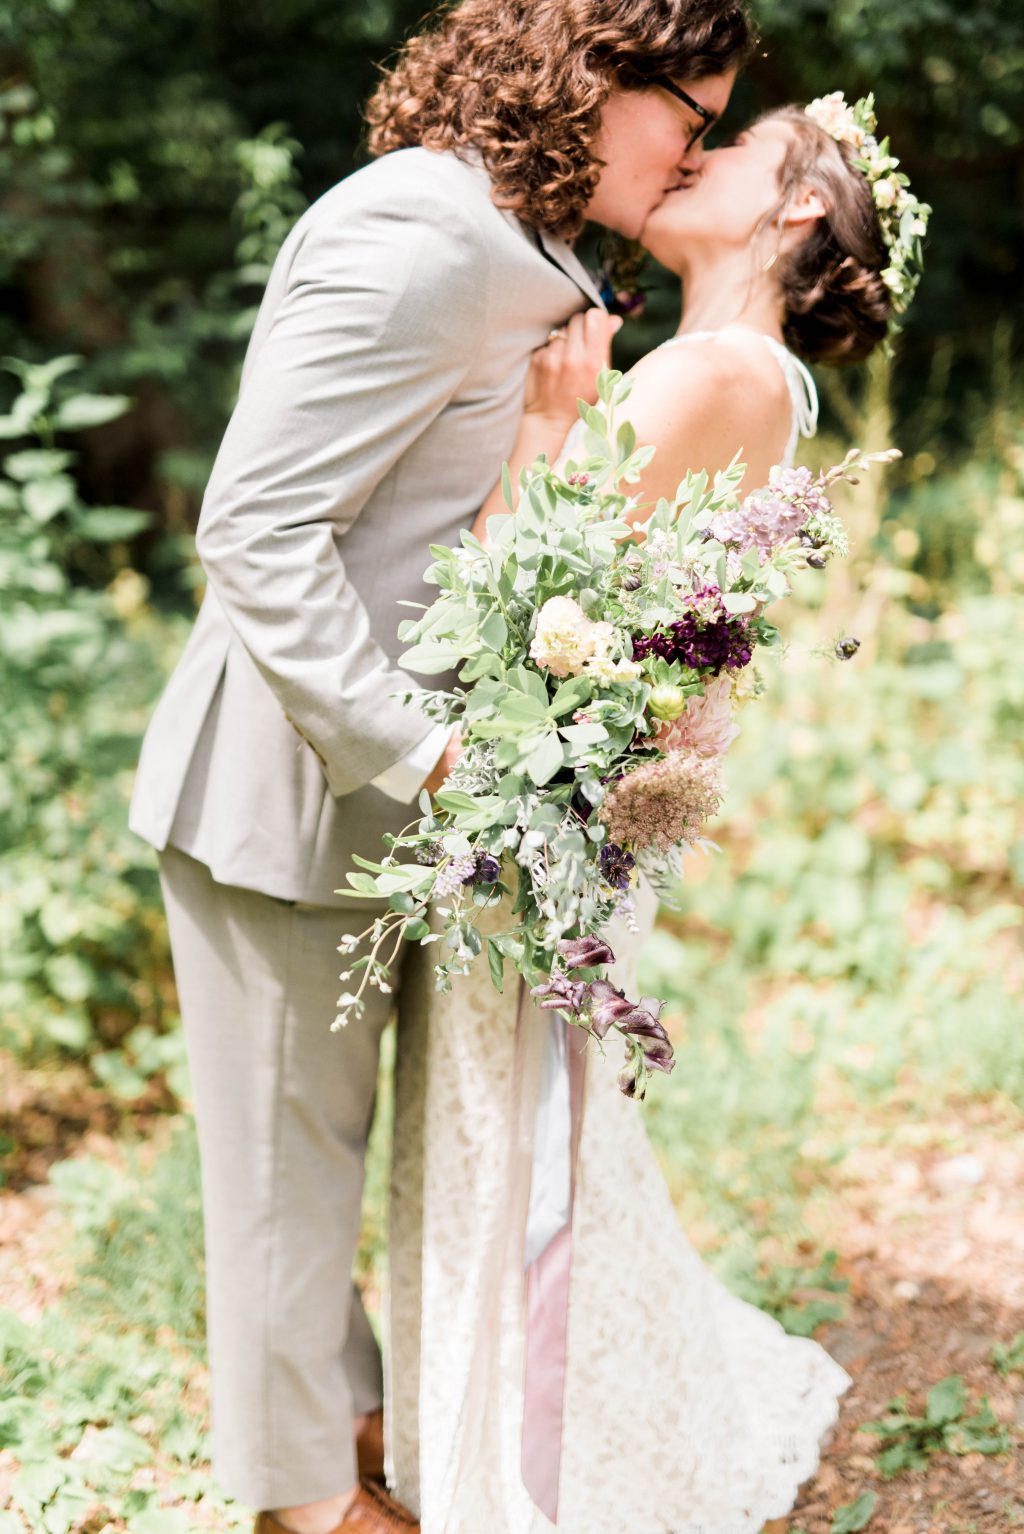 awbury-arboretum-wedding-DIY-boho-summer-haley-richter-photography-084